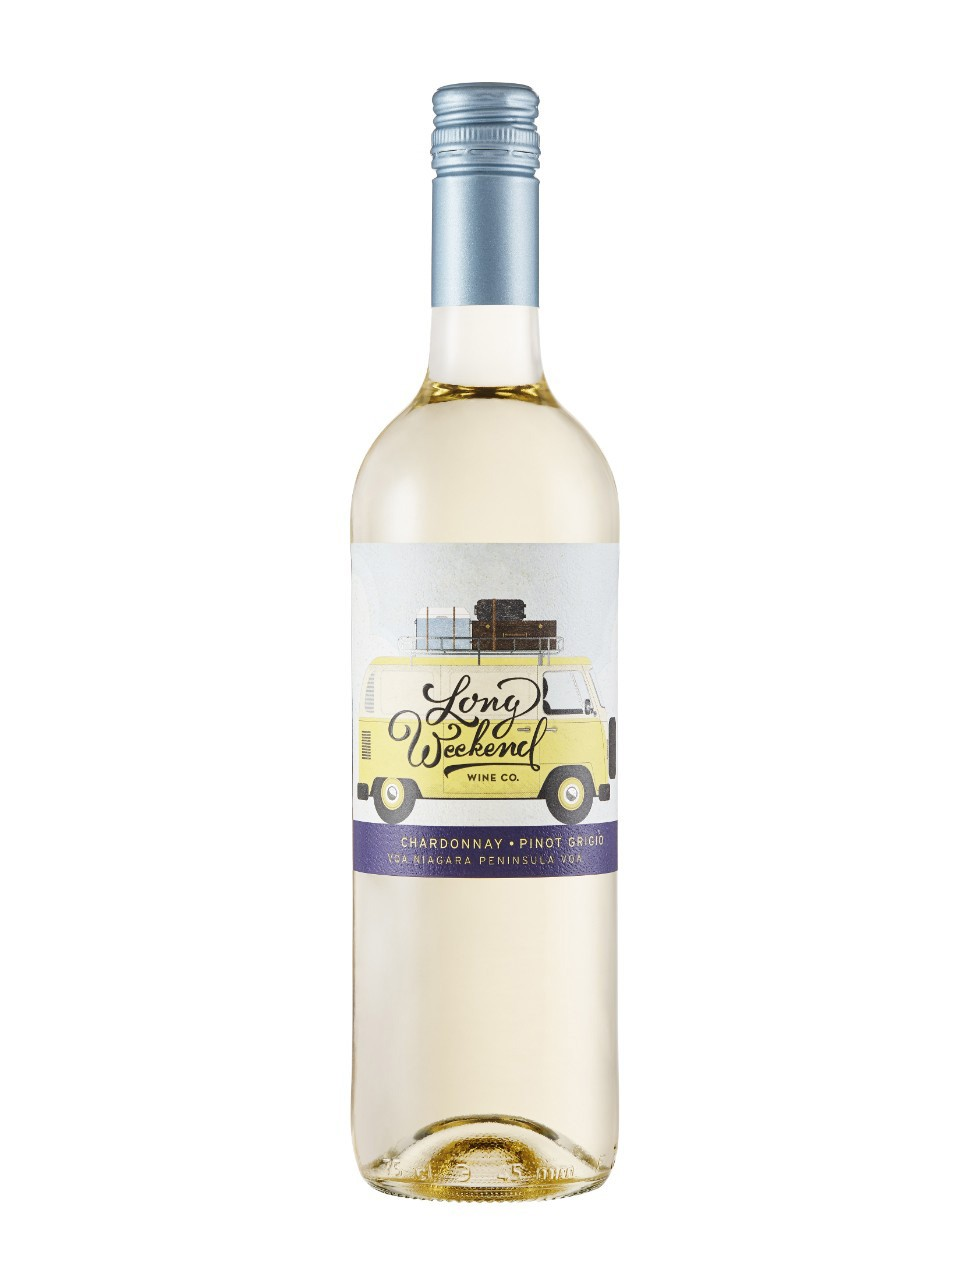 Image for Long Weekend Wine Co.Chardonnay Pinot Grigio VQA from LCBO